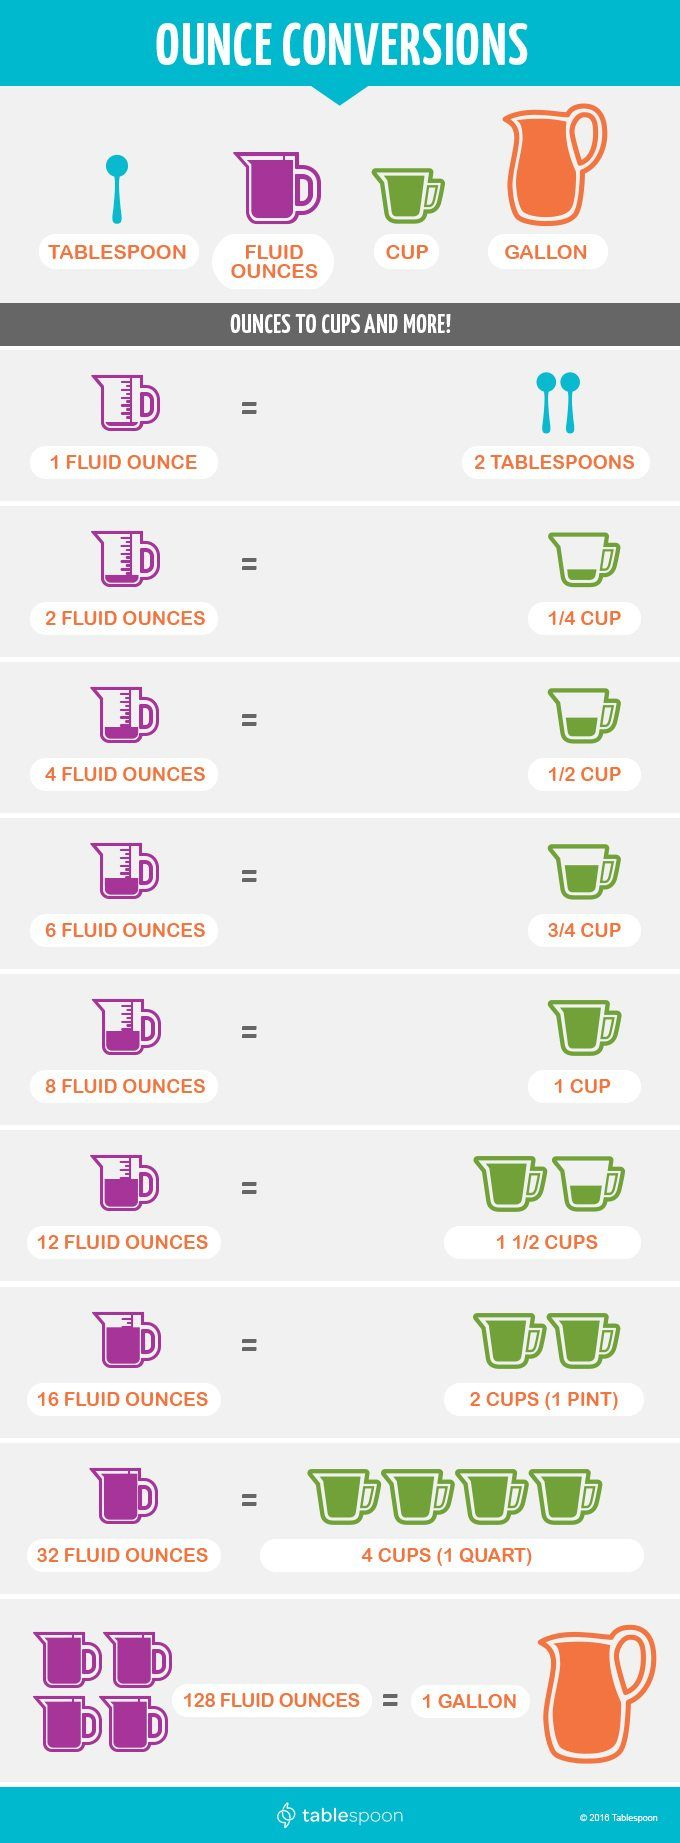 Measurement conversions tablespoon teaspoon and cups wet and measurement conversions tablespoon teaspoon and cups wet and dry ingredients cooking tips cooking basics cooking for beginners baking nvjuhfo Image collections